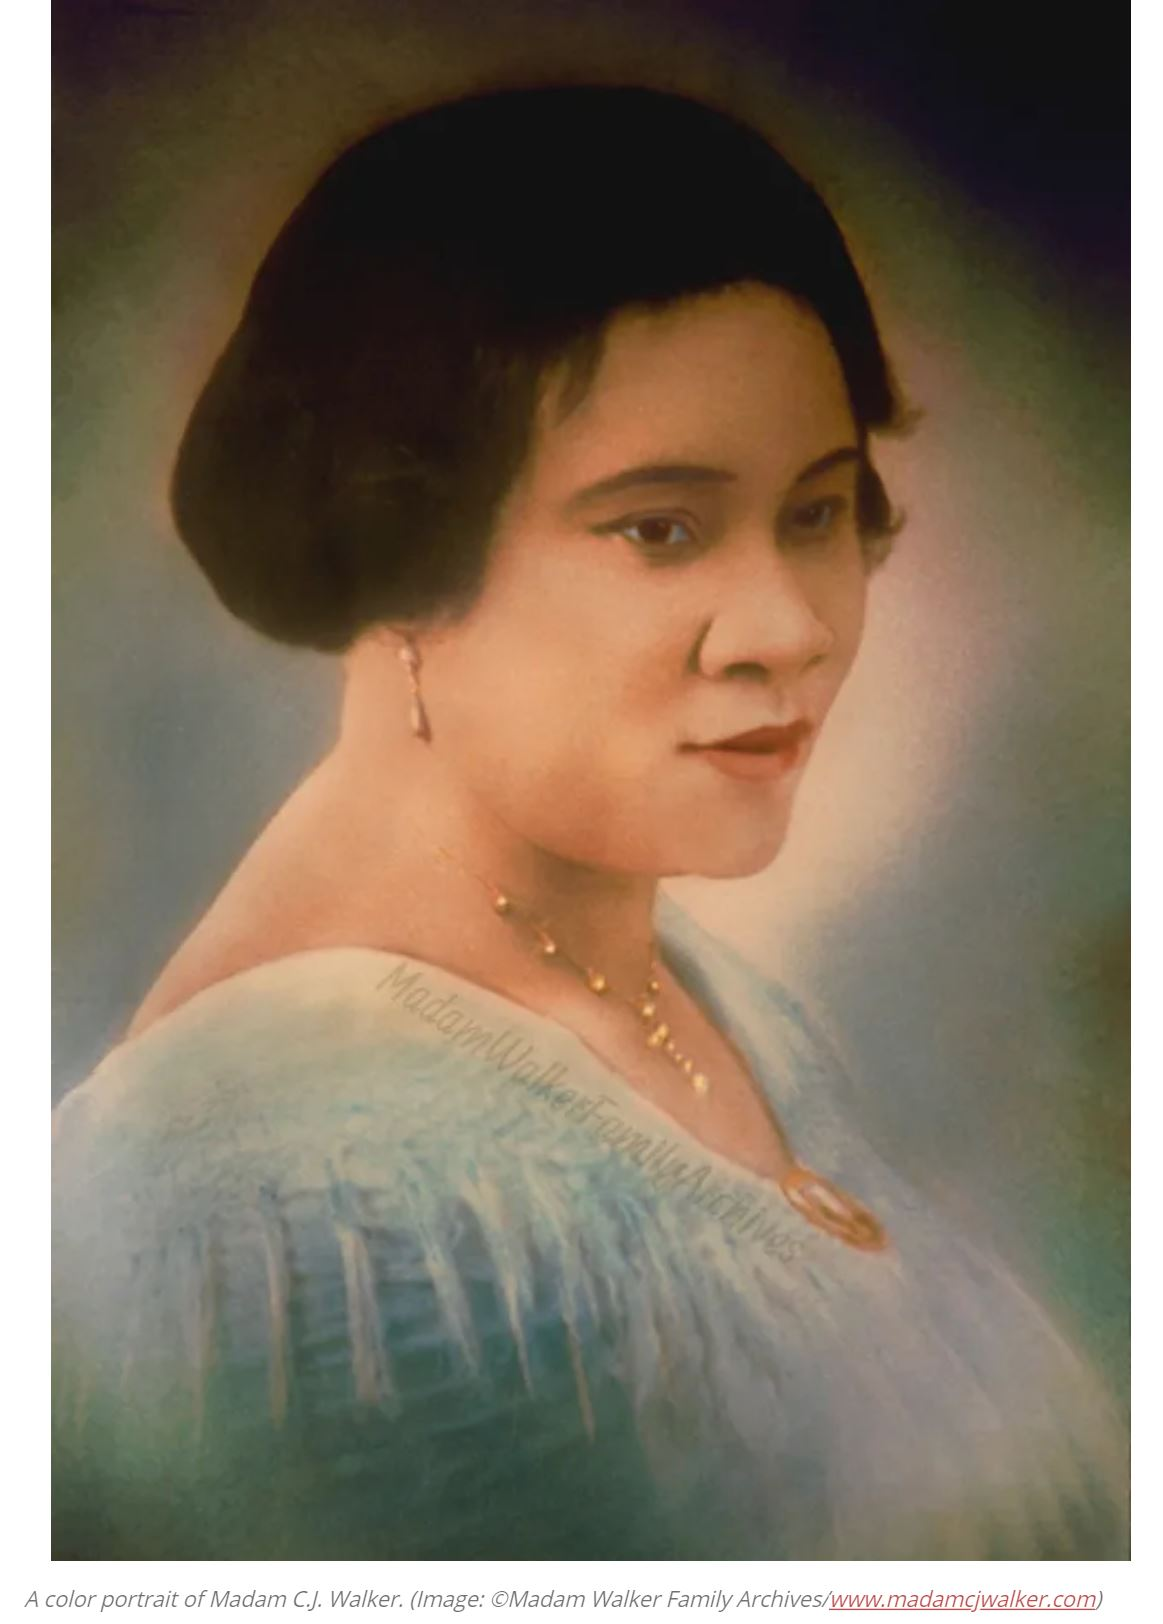 For more background on Madame C.J. Walker, click ( here ).